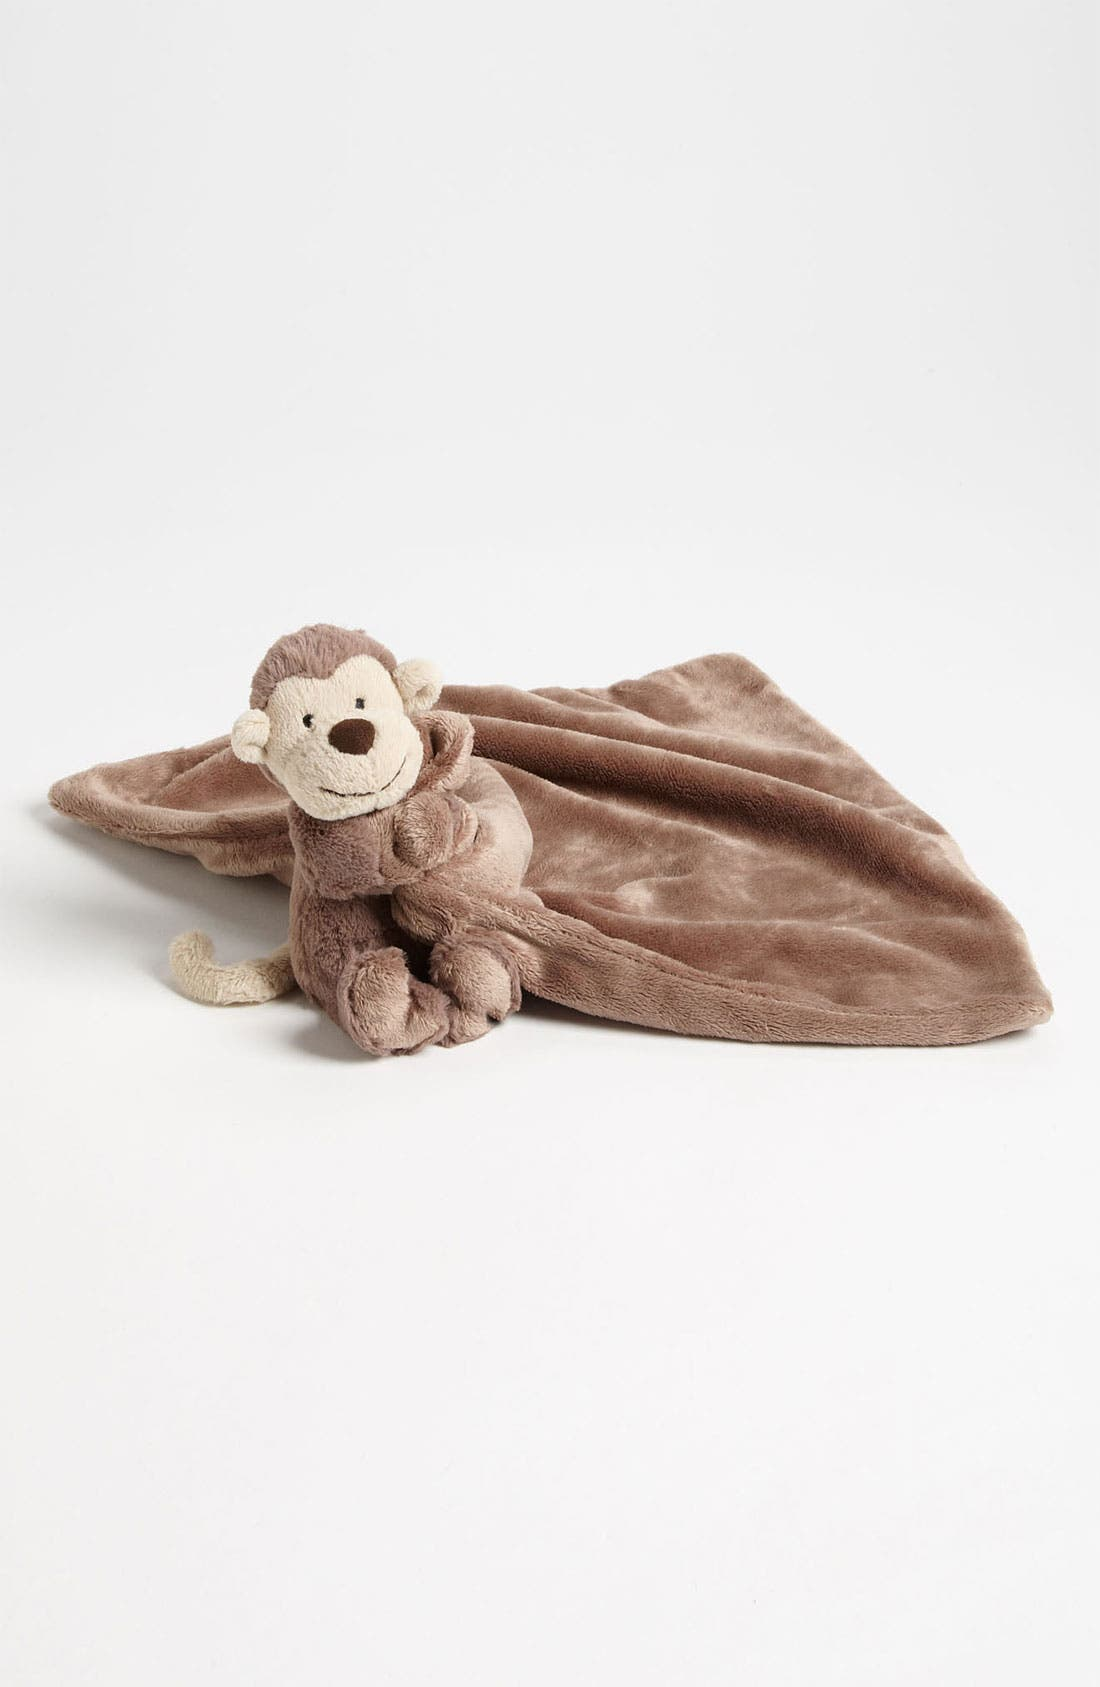 'Bashful Monkey Soother' Stuffed Animal & Blanket,                         Main,                         color,